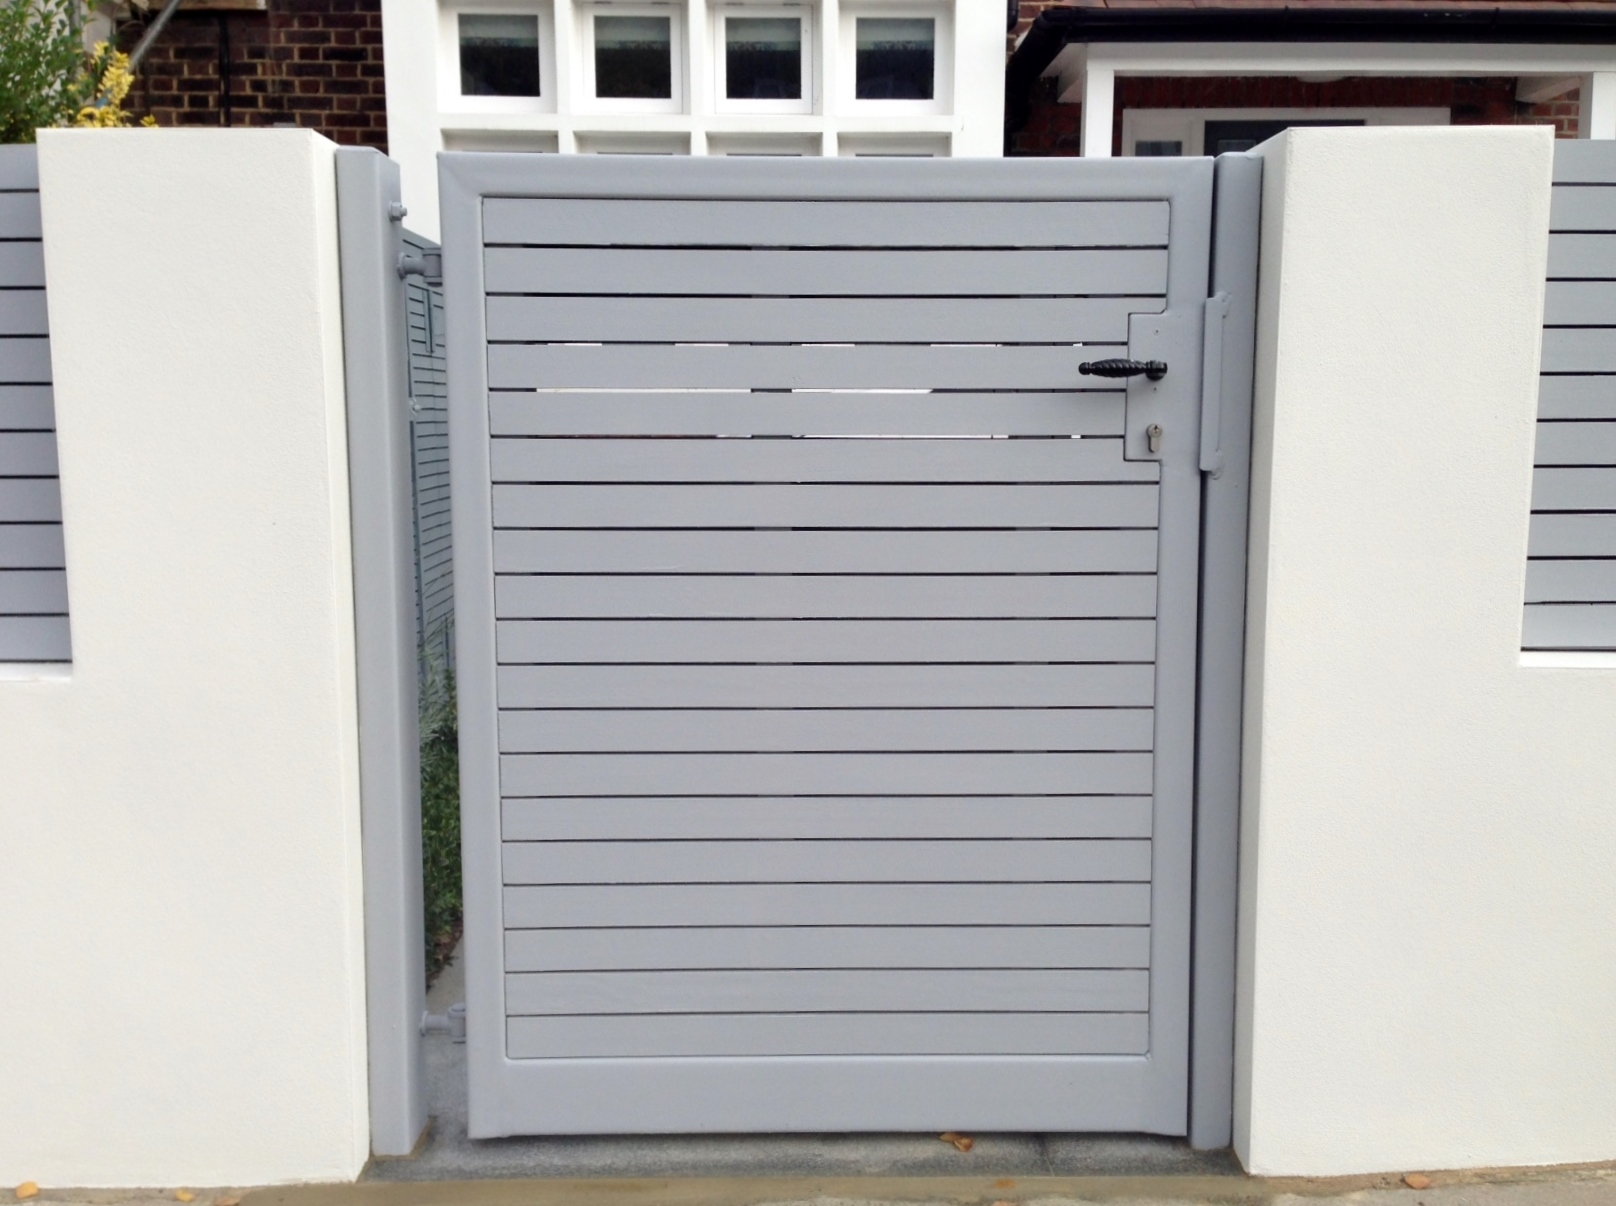 front boundary wall screen automated electronic gate installation grey wooden fence bike store modern garden design balham clapham london (5)